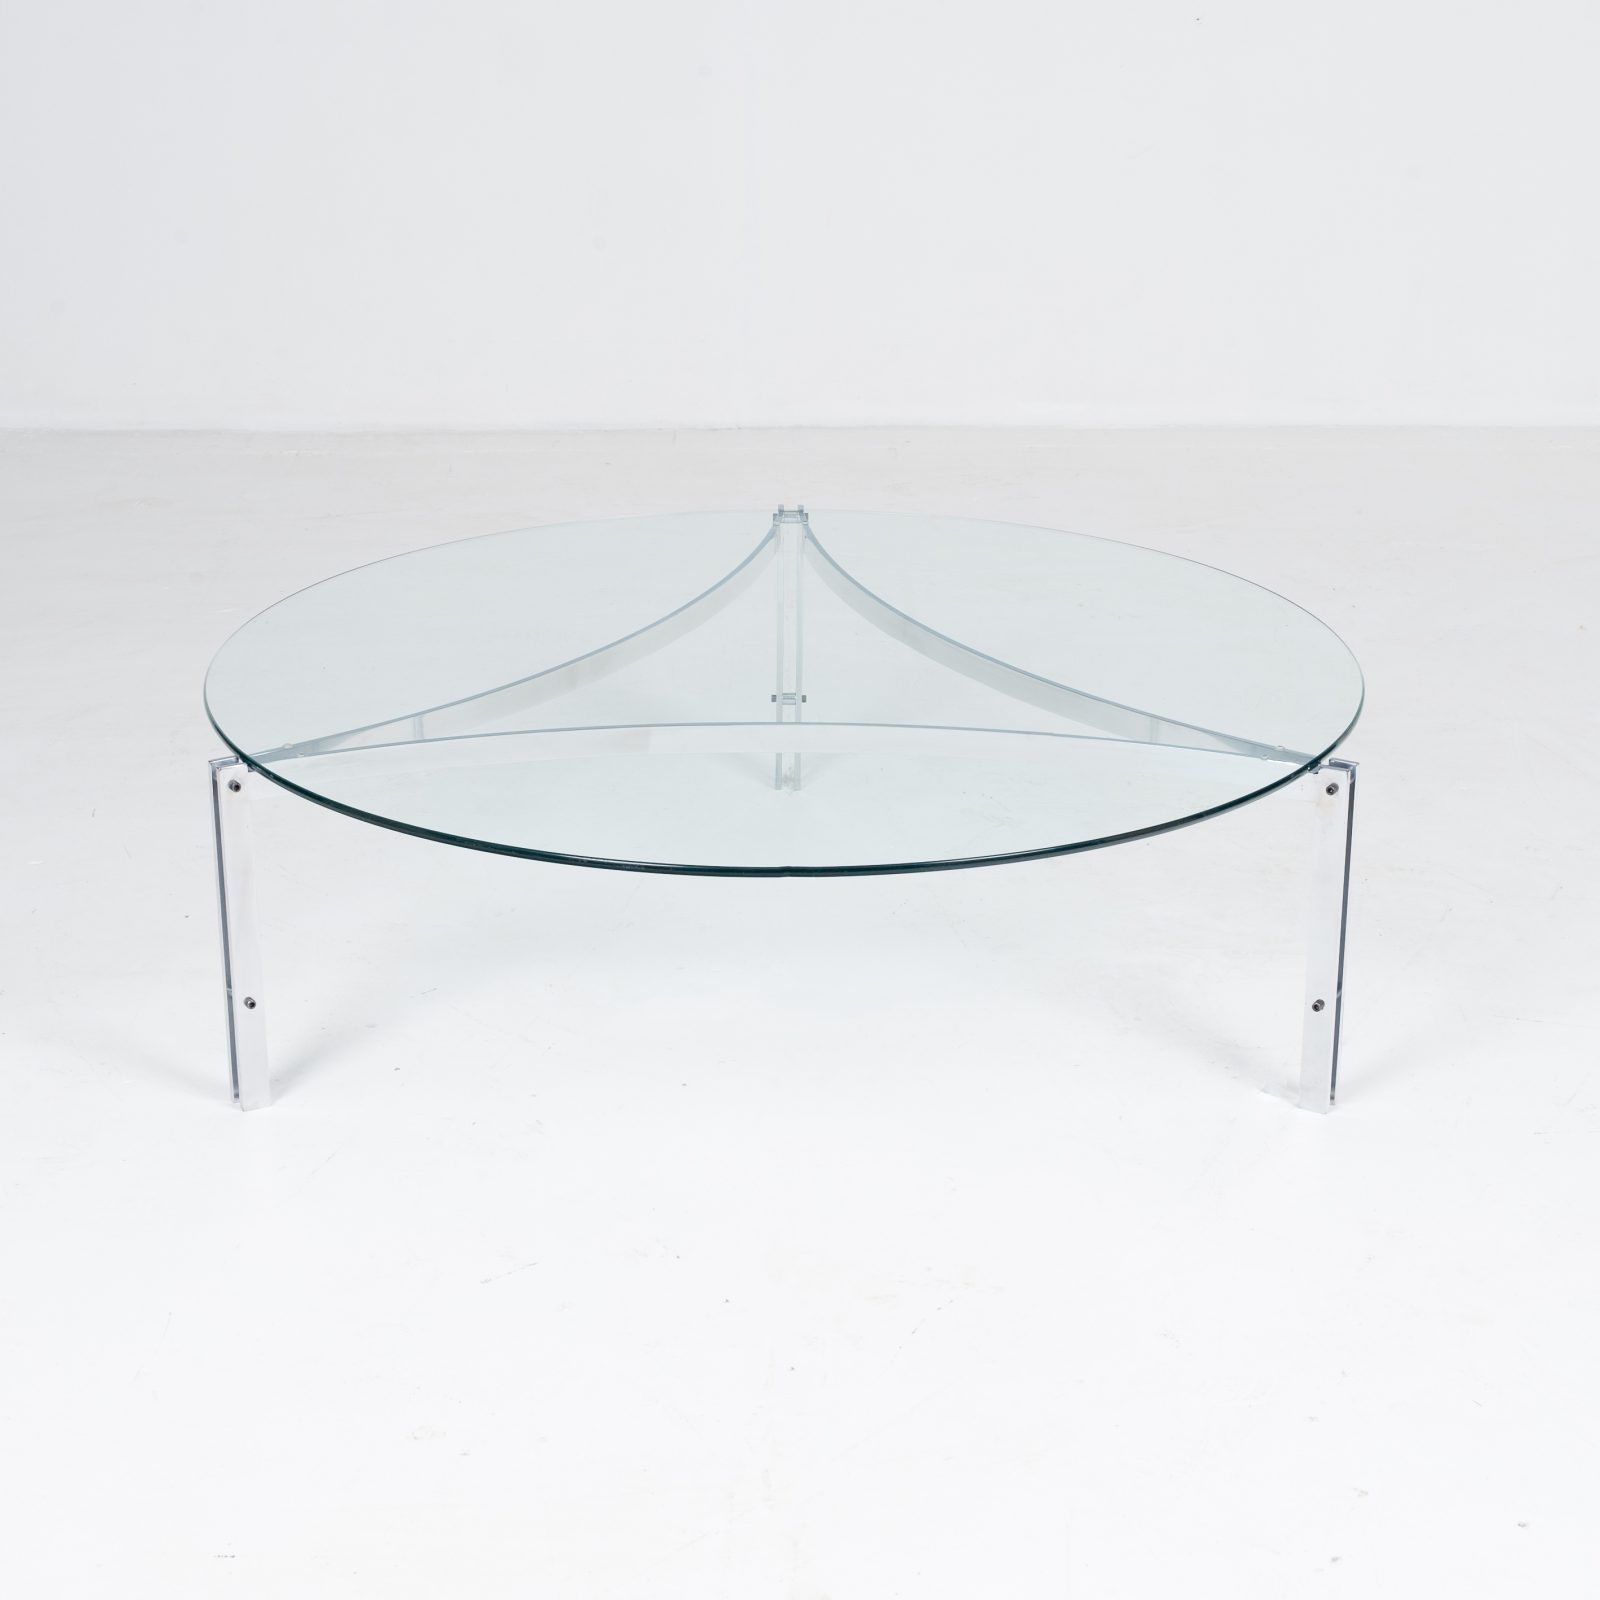 Tri Base Coffee Table By Metaform, 1970s, The Netherlands8